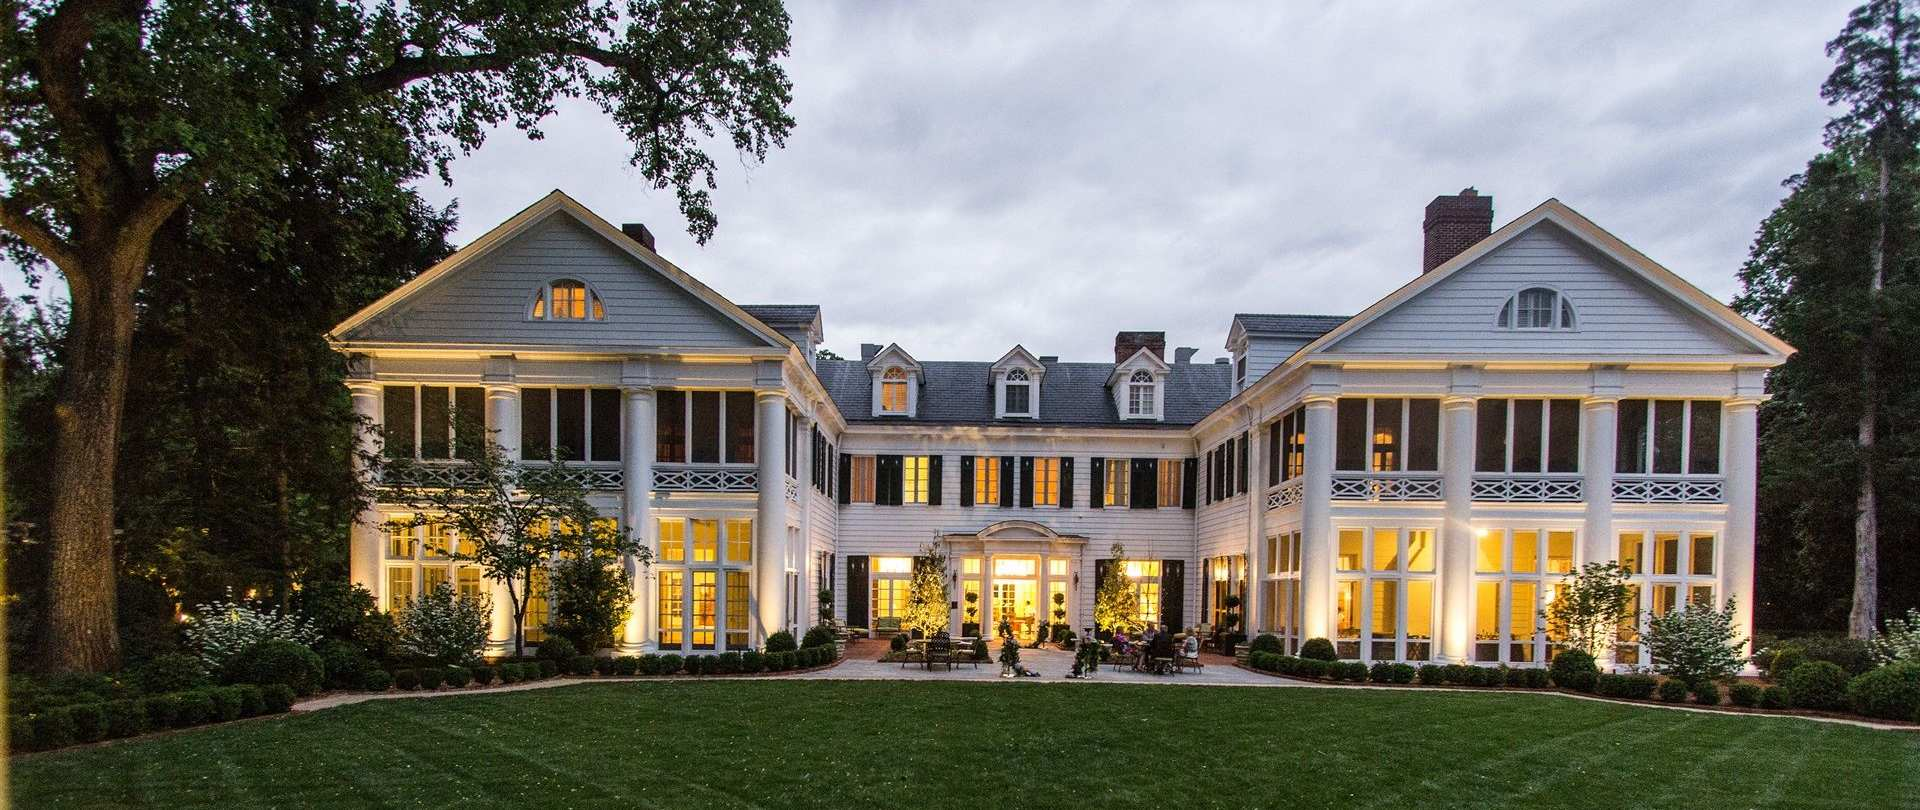 DUE TO POPULAR DEMAND, THE HISTORIC DUKE MANSION IS CONTINUING ITS SUMMER COCKTAIL EVENINGS EVERY MONDAY-THURSDAY IN AUGUST FROM 5 TO 8 P.M.